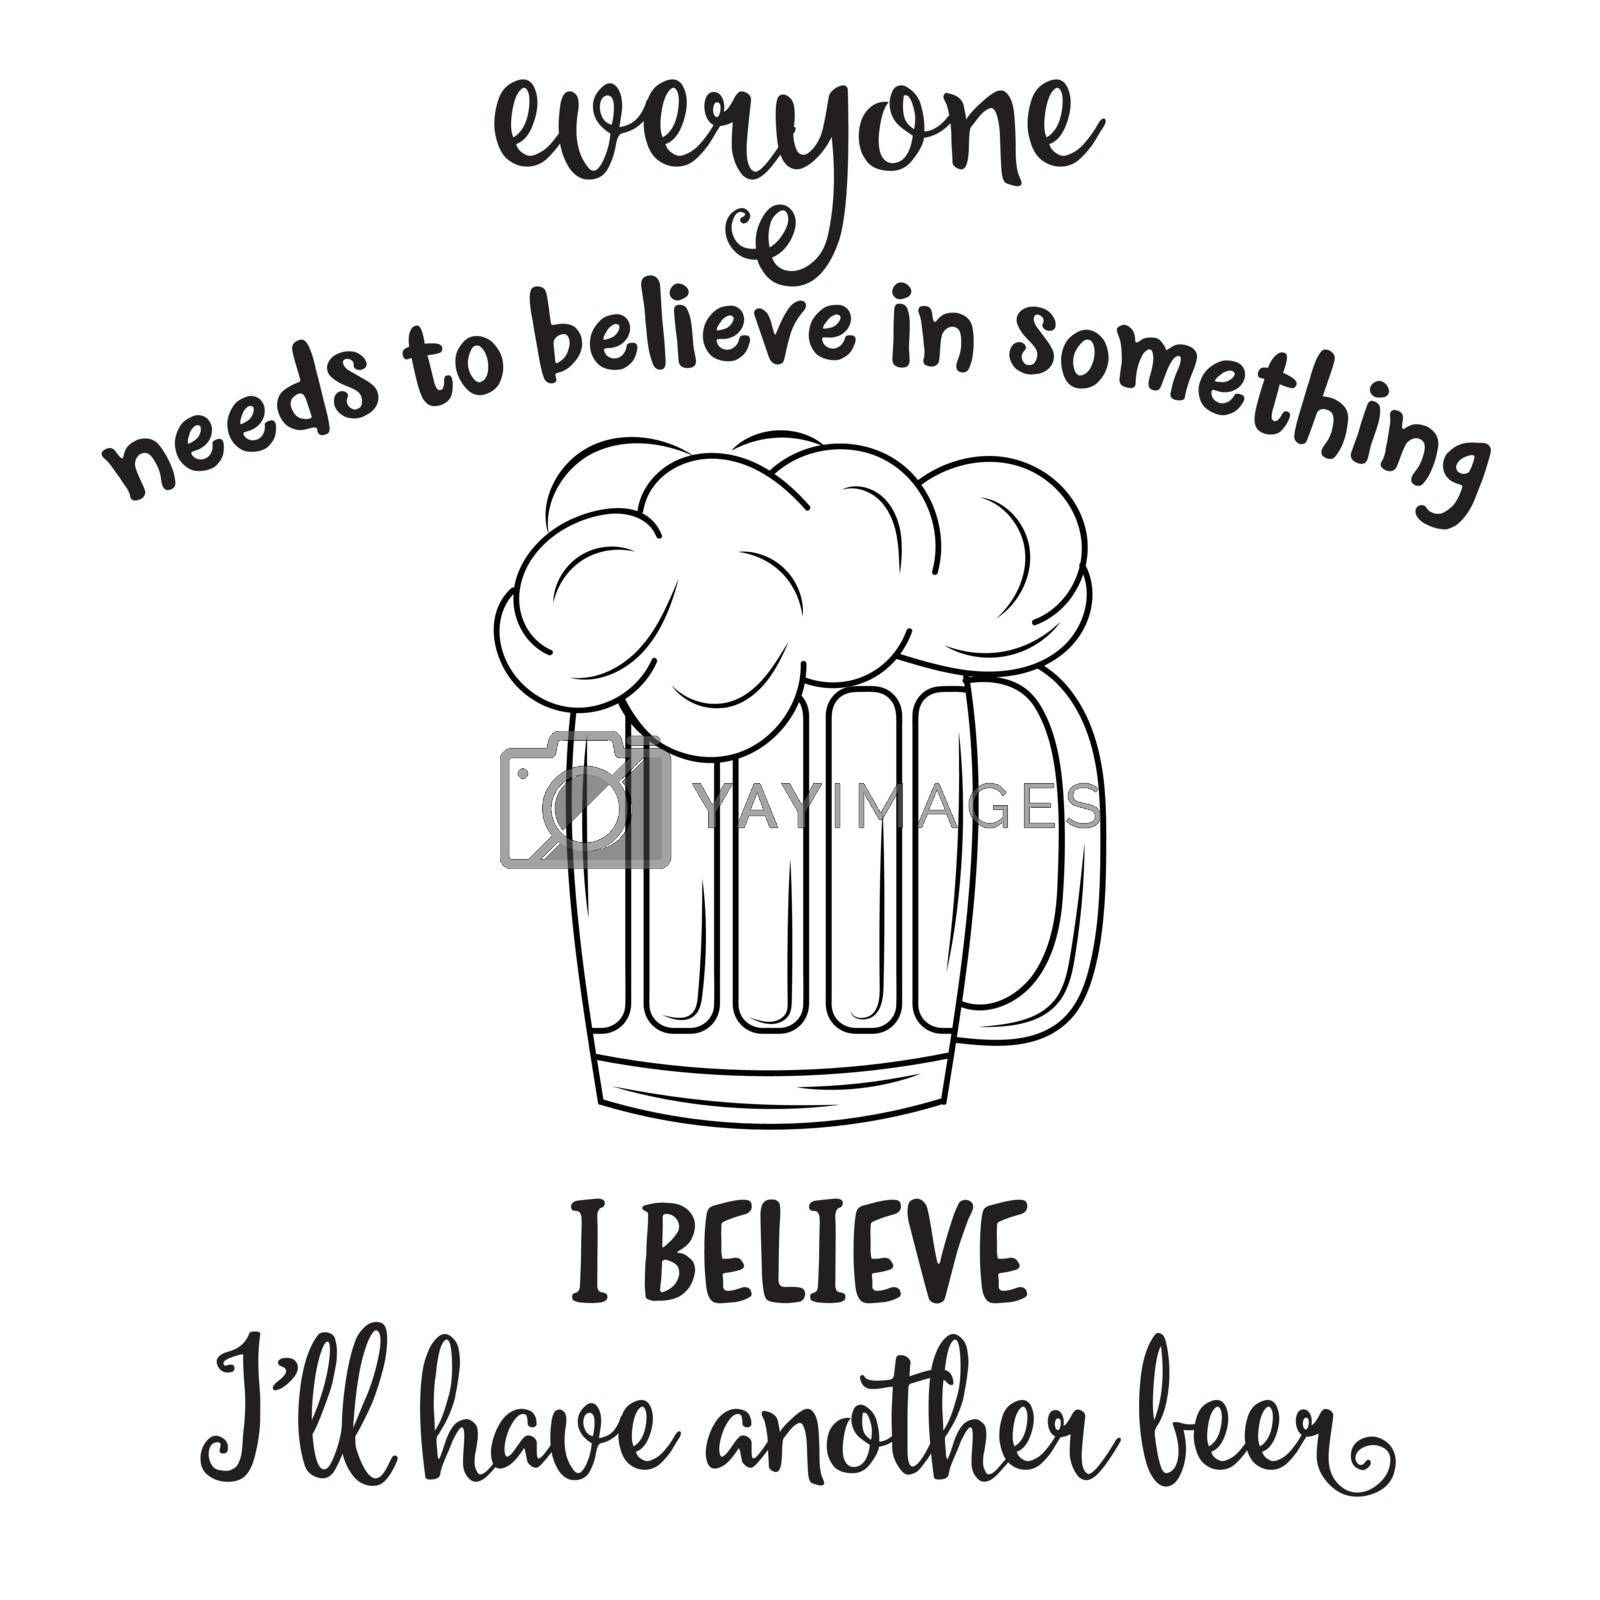 """""""Everyone needs to blieve in something, I believe I'll have another beer"""". Funny quote about beer"""